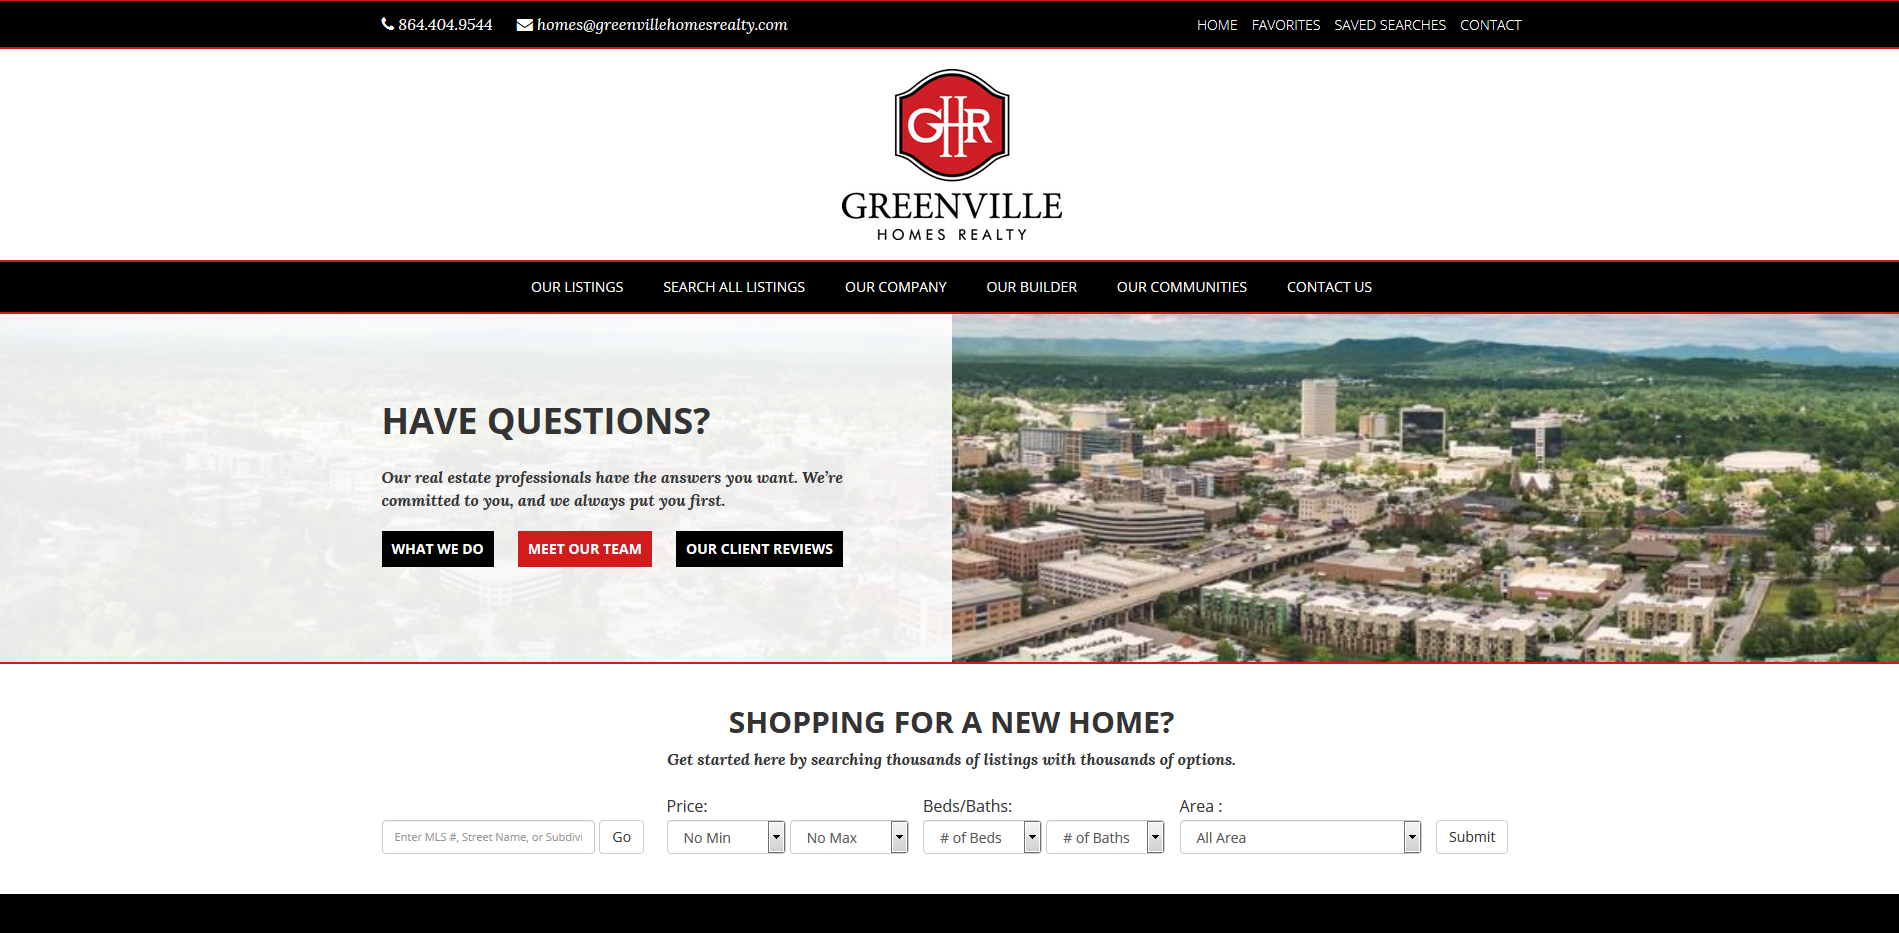 Greenville Homes Realty